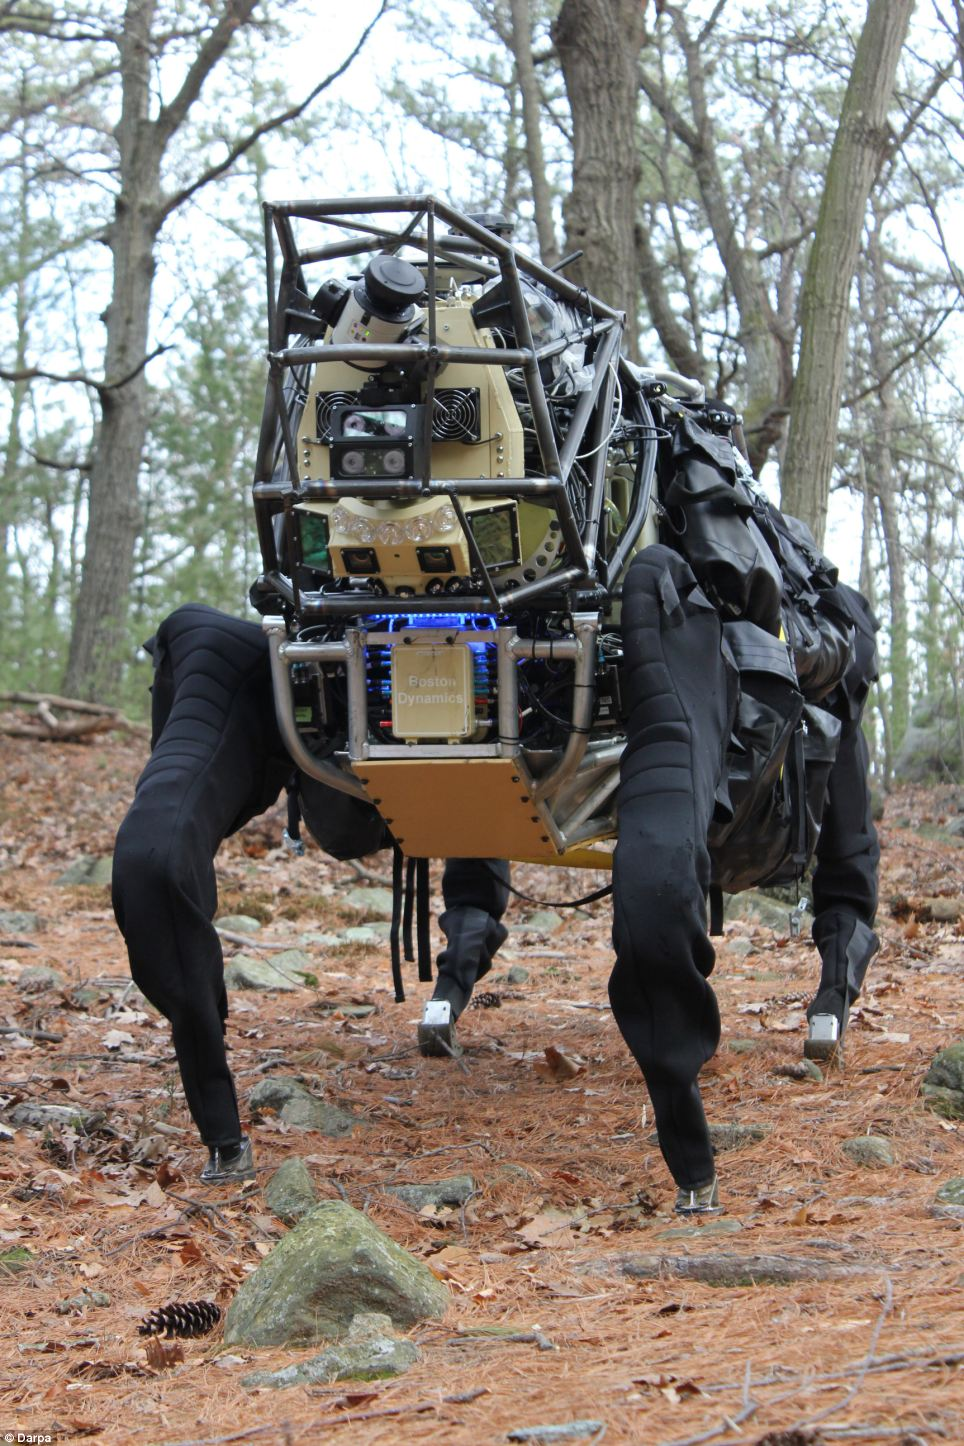 Darpa's AlphaDog has already been tested in woods, and in December will take part in Marine exercises